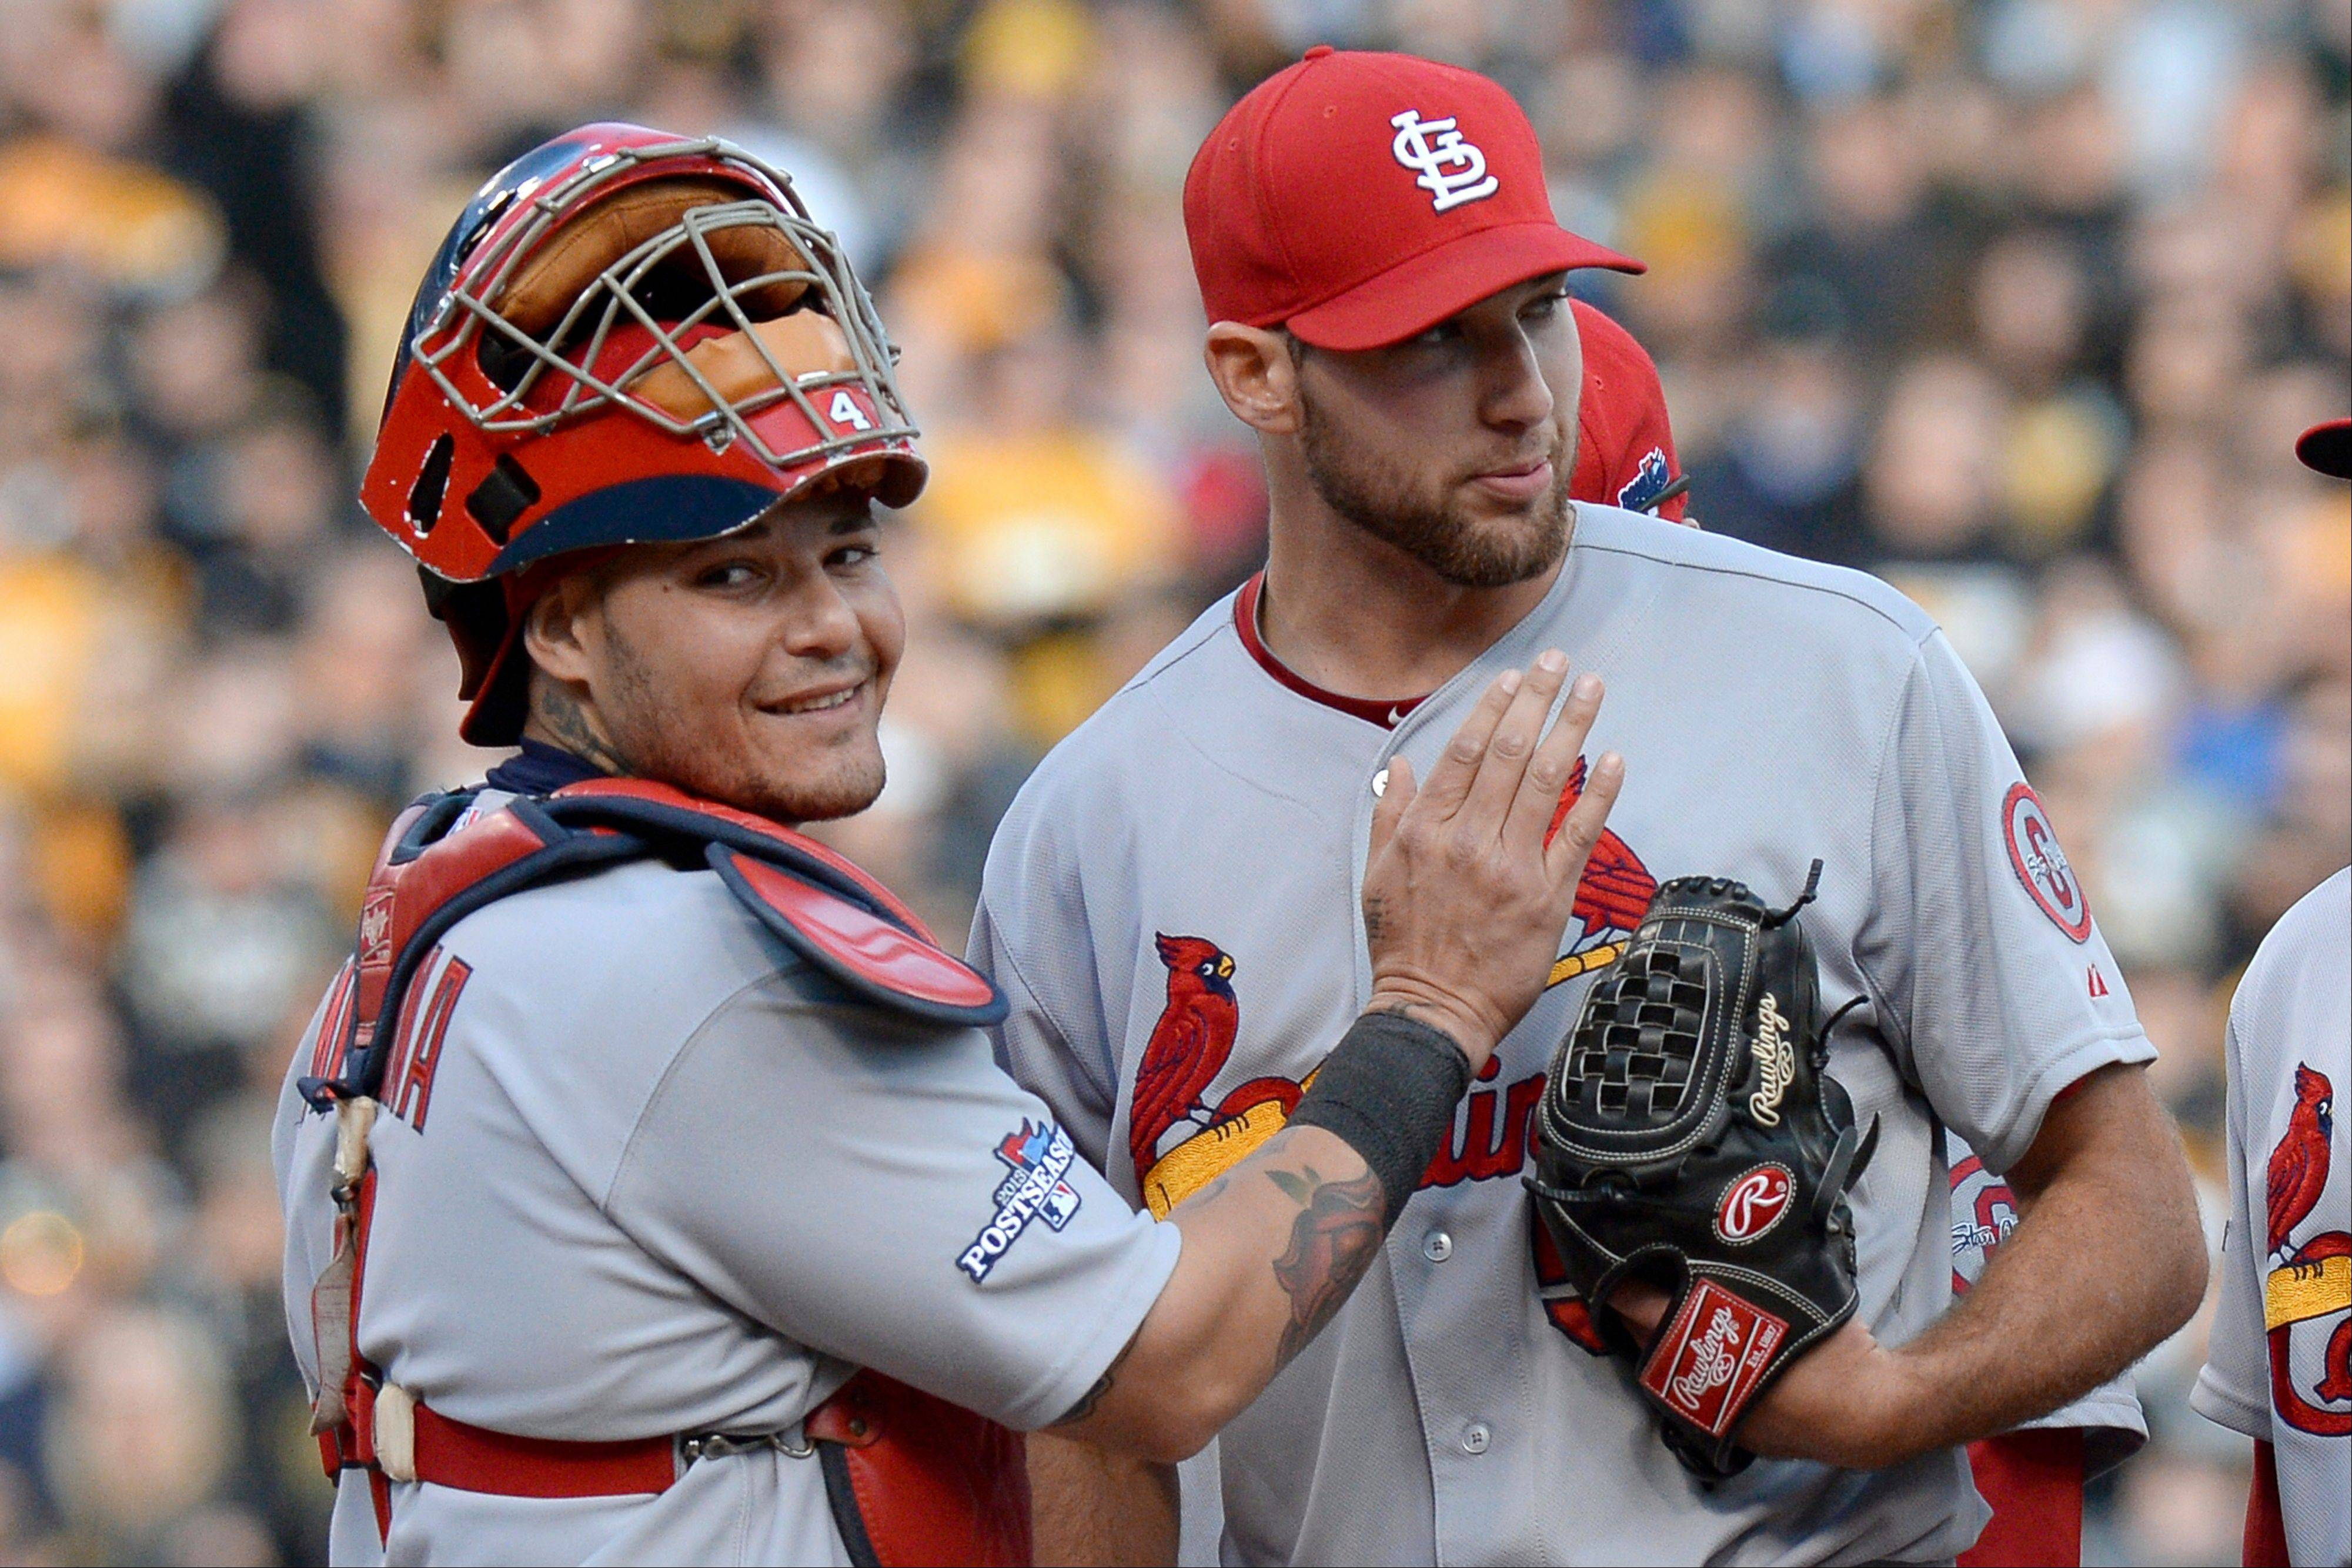 St. Louis Cardinals catcher Yadier Molina, left, pats starting pitcher Michael Wacha right before he was lifted from the game in the eighth inning Monday in Game 4 of a National League Division Series against the Pittsburgh Pirates. Wacha had a no-hitter going until the Pirates' Pedro Alvarez hit a home run in that inning.